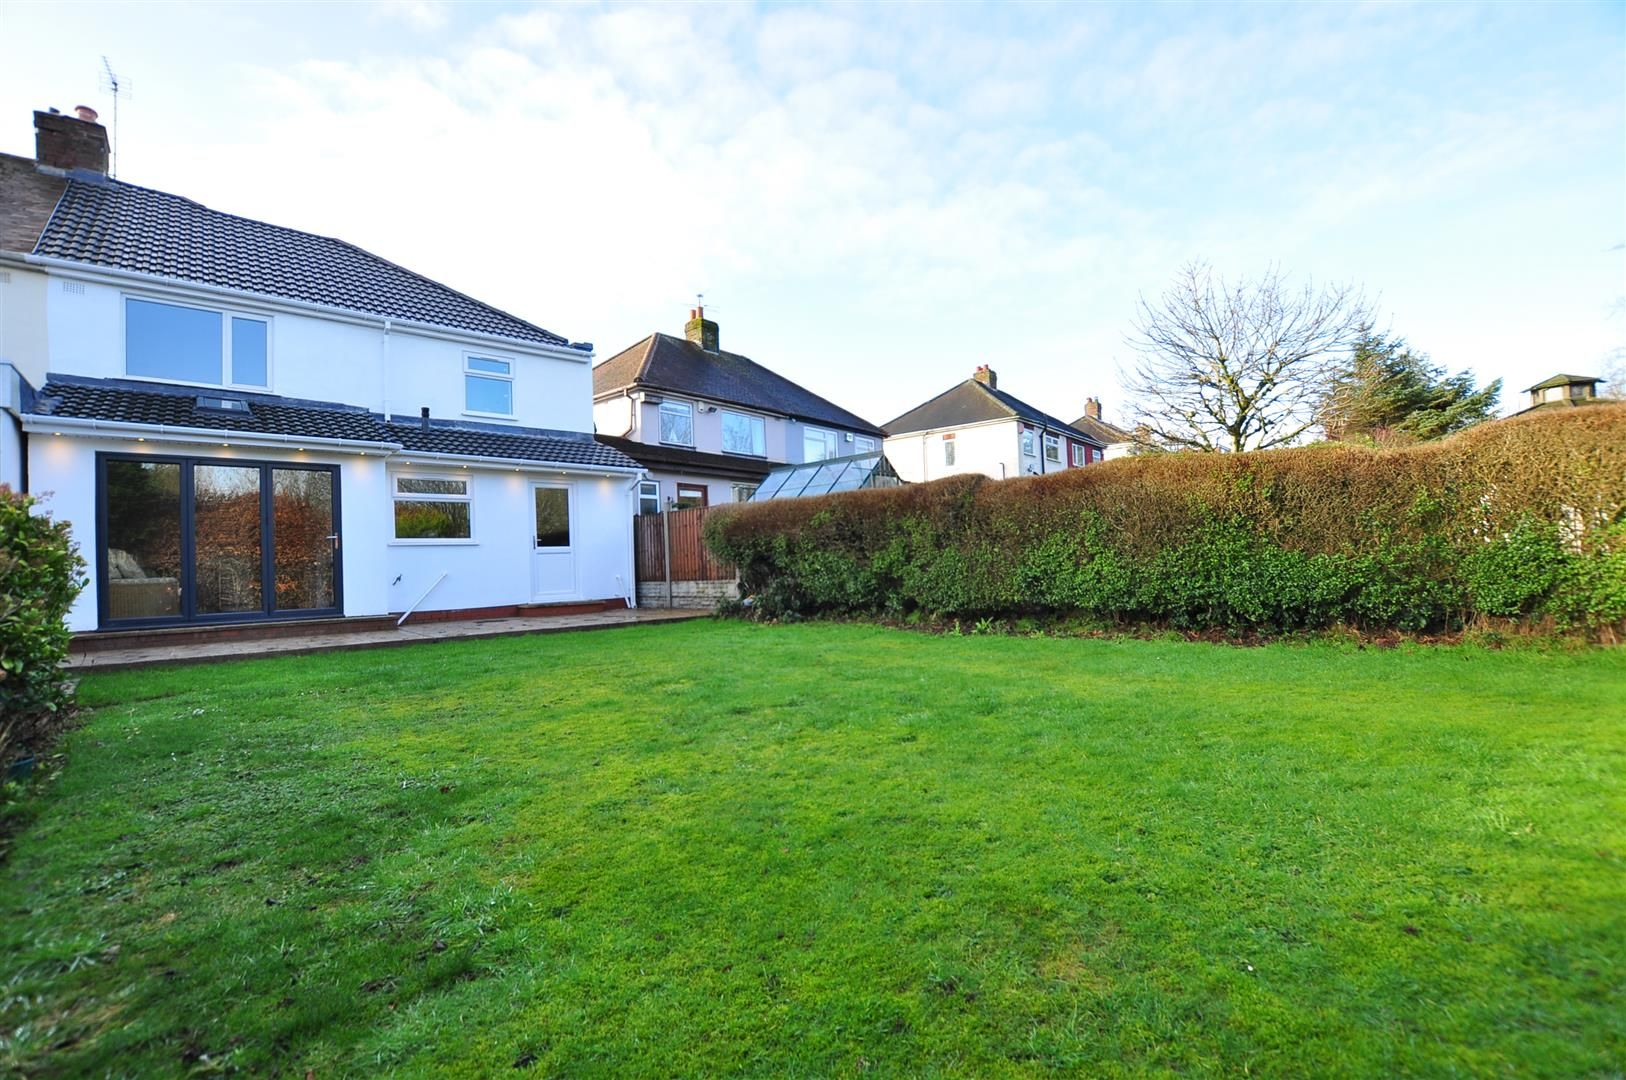 3 bed house for sale 25